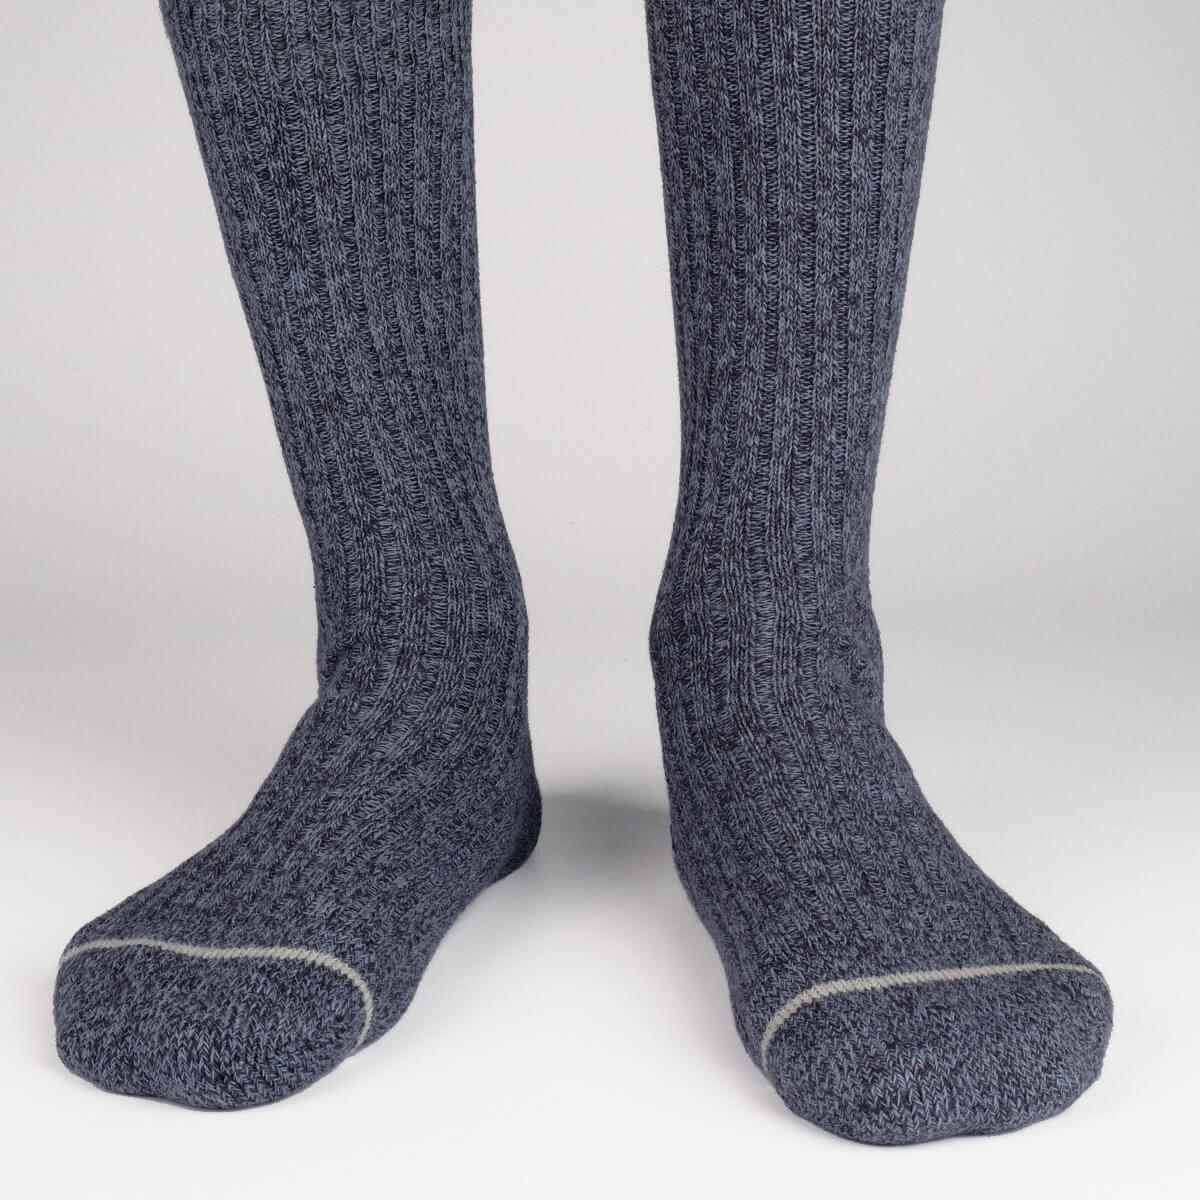 Mens Socks - Get The Boot Men's Socks - Blue⎪Etiquette Clothiers